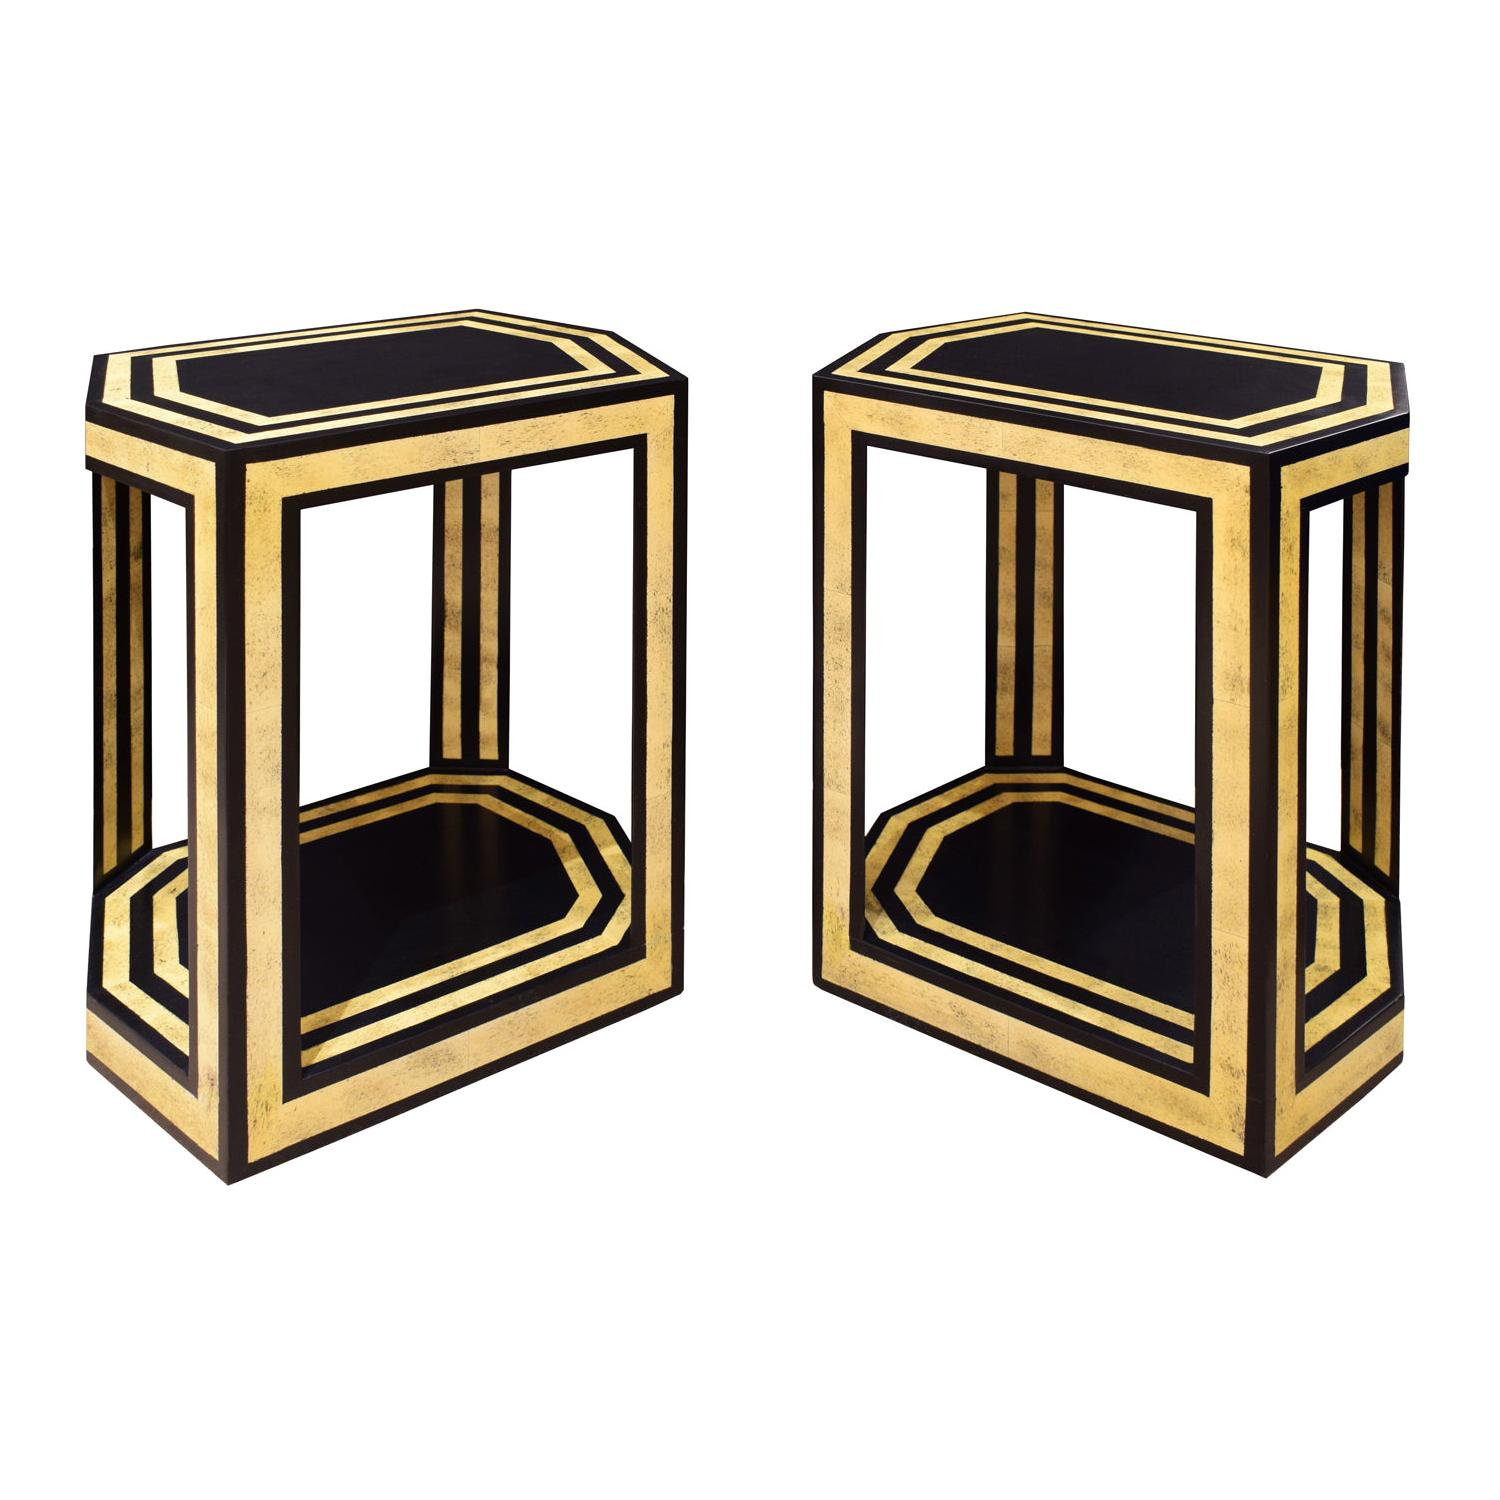 Karl Springer Pair of End Tables in Black and Bone Lacquer, 1970s